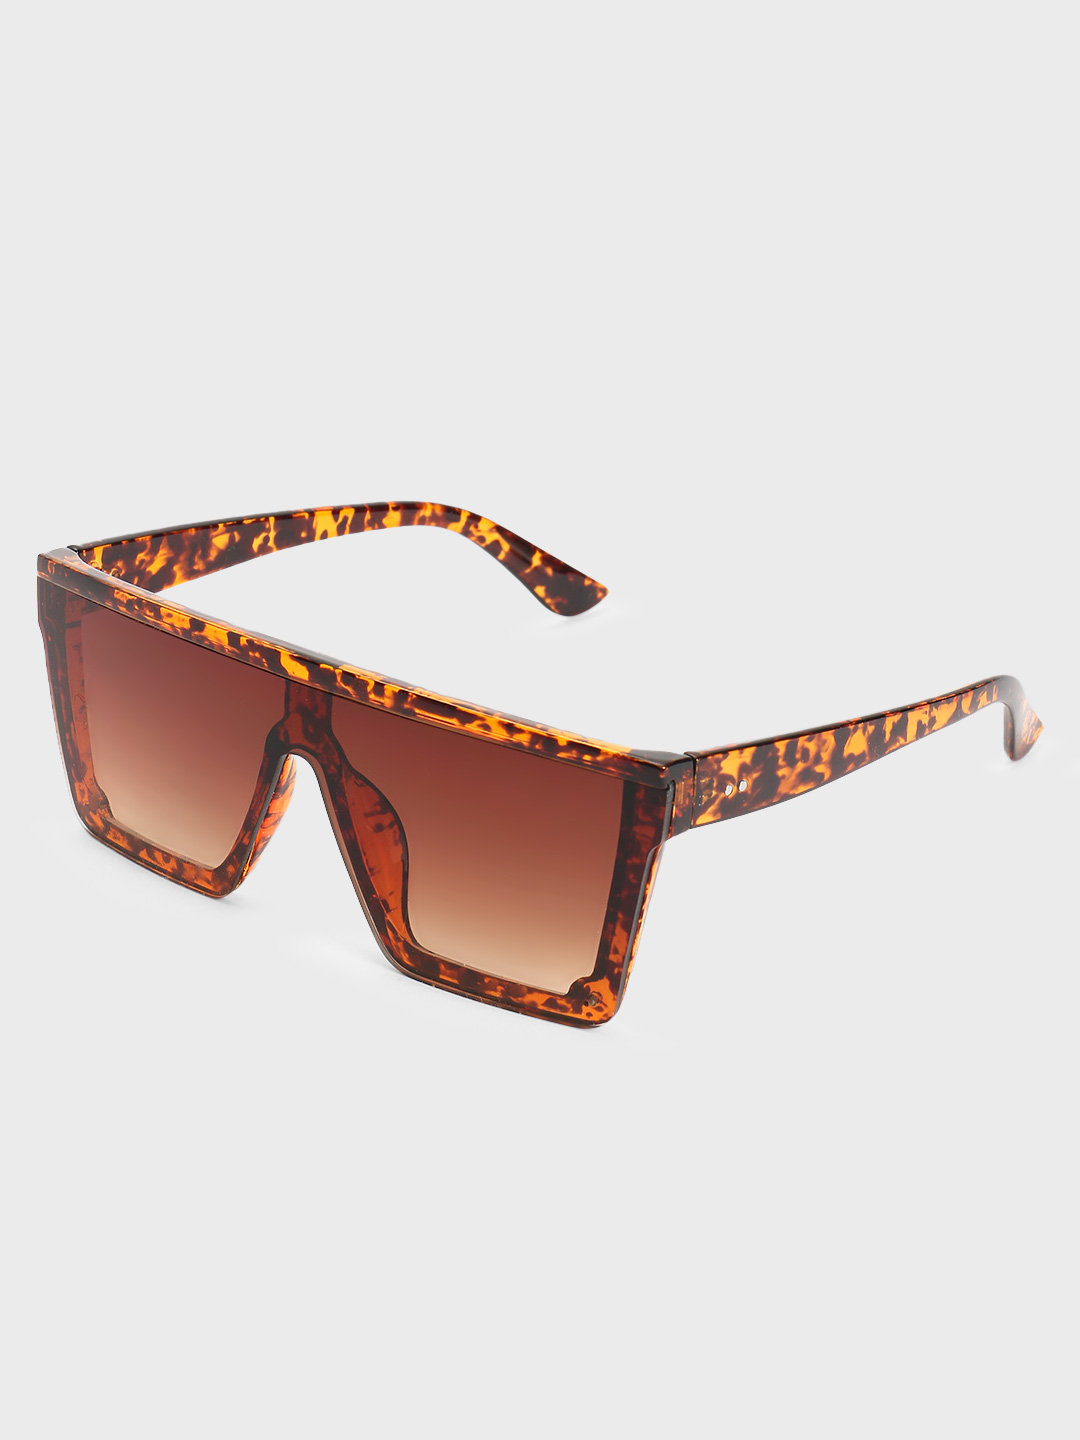 Pataaka Brown Tortoise Shell Frame Square Sunglasses 1